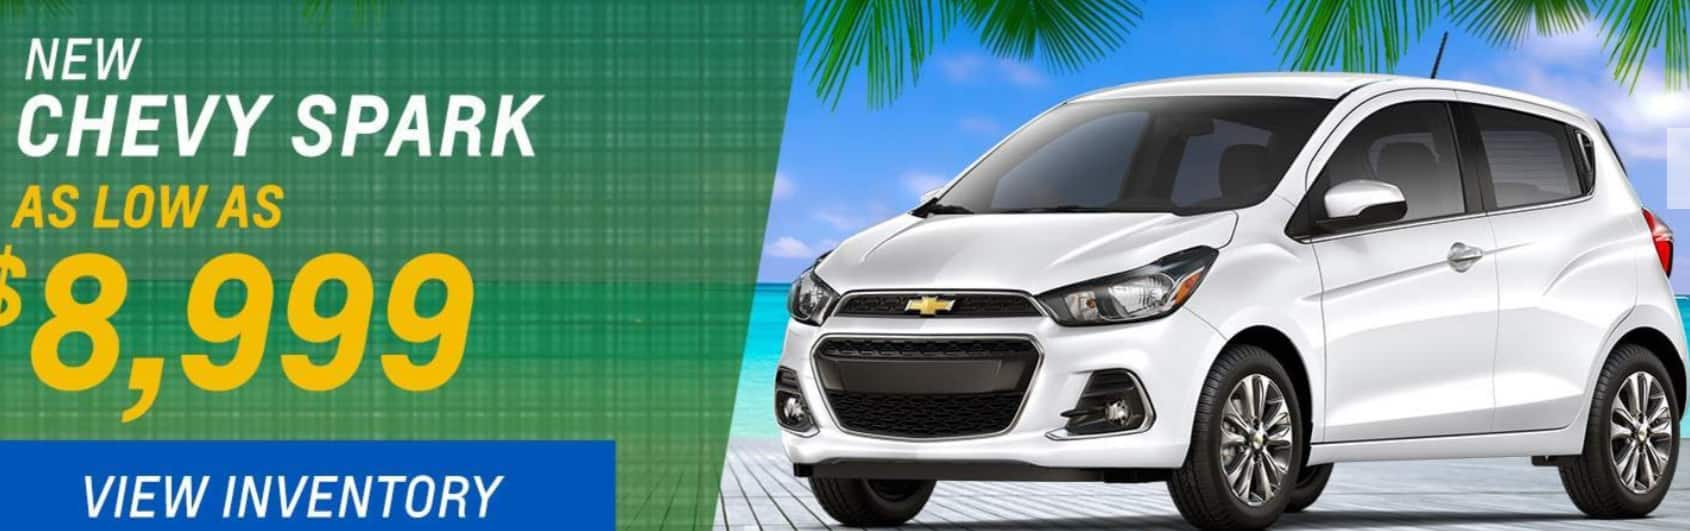 NEW 2017 Chevrolet Spark $8999 plus tax and all fee's